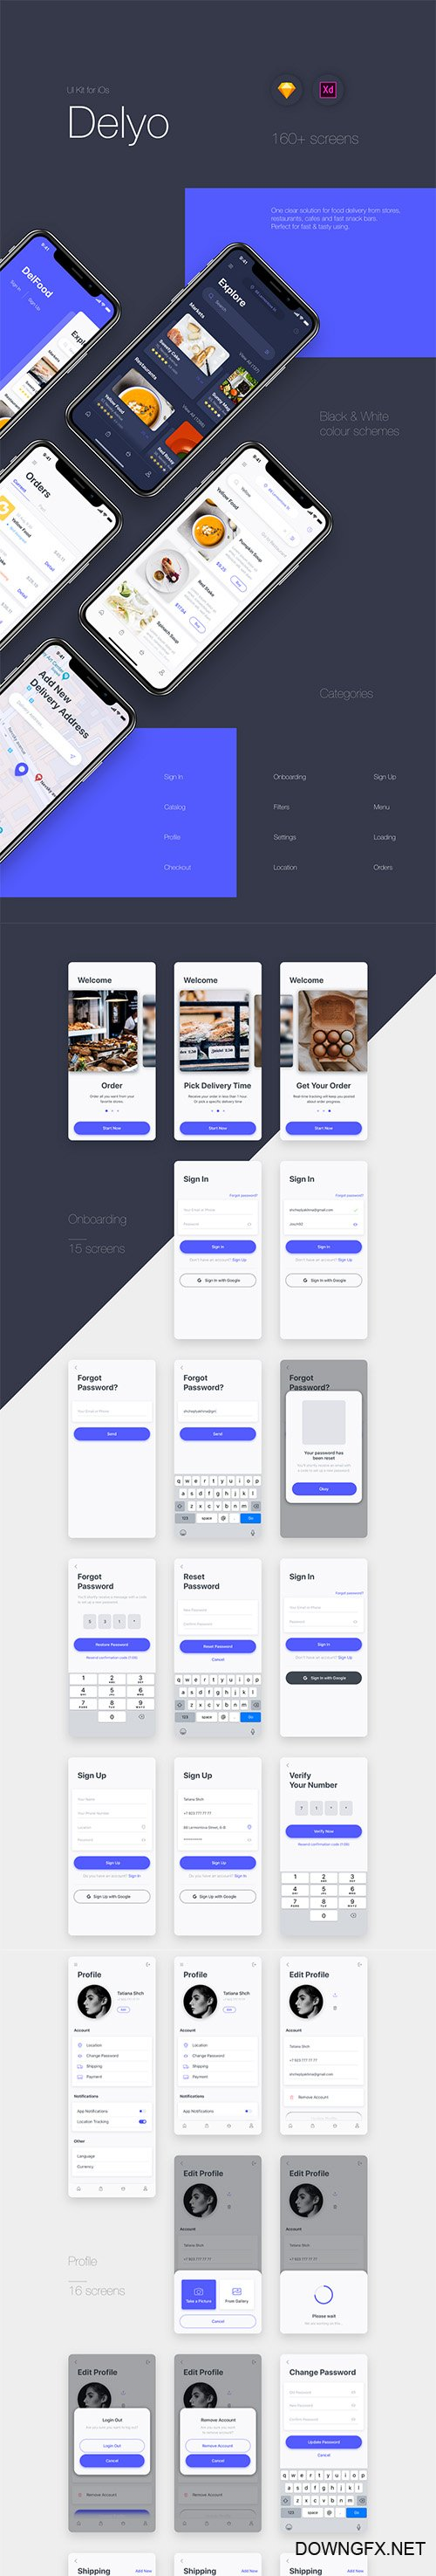 Delyo iOS UI Kit